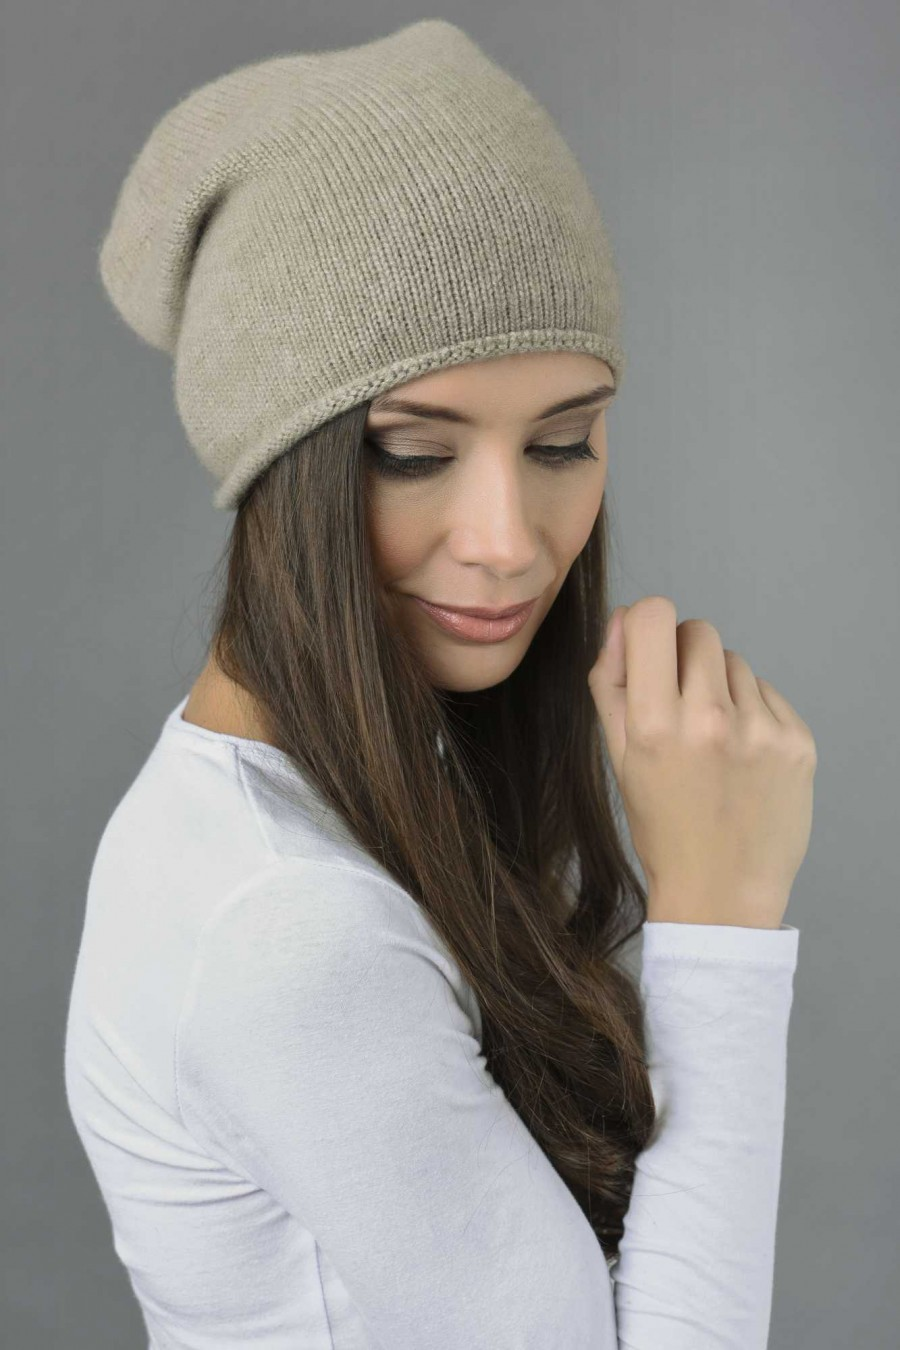 11aed946b10b3 Pure Cashmere Plain Knitted Slouchy Beanie Hat in Camel Brown ...